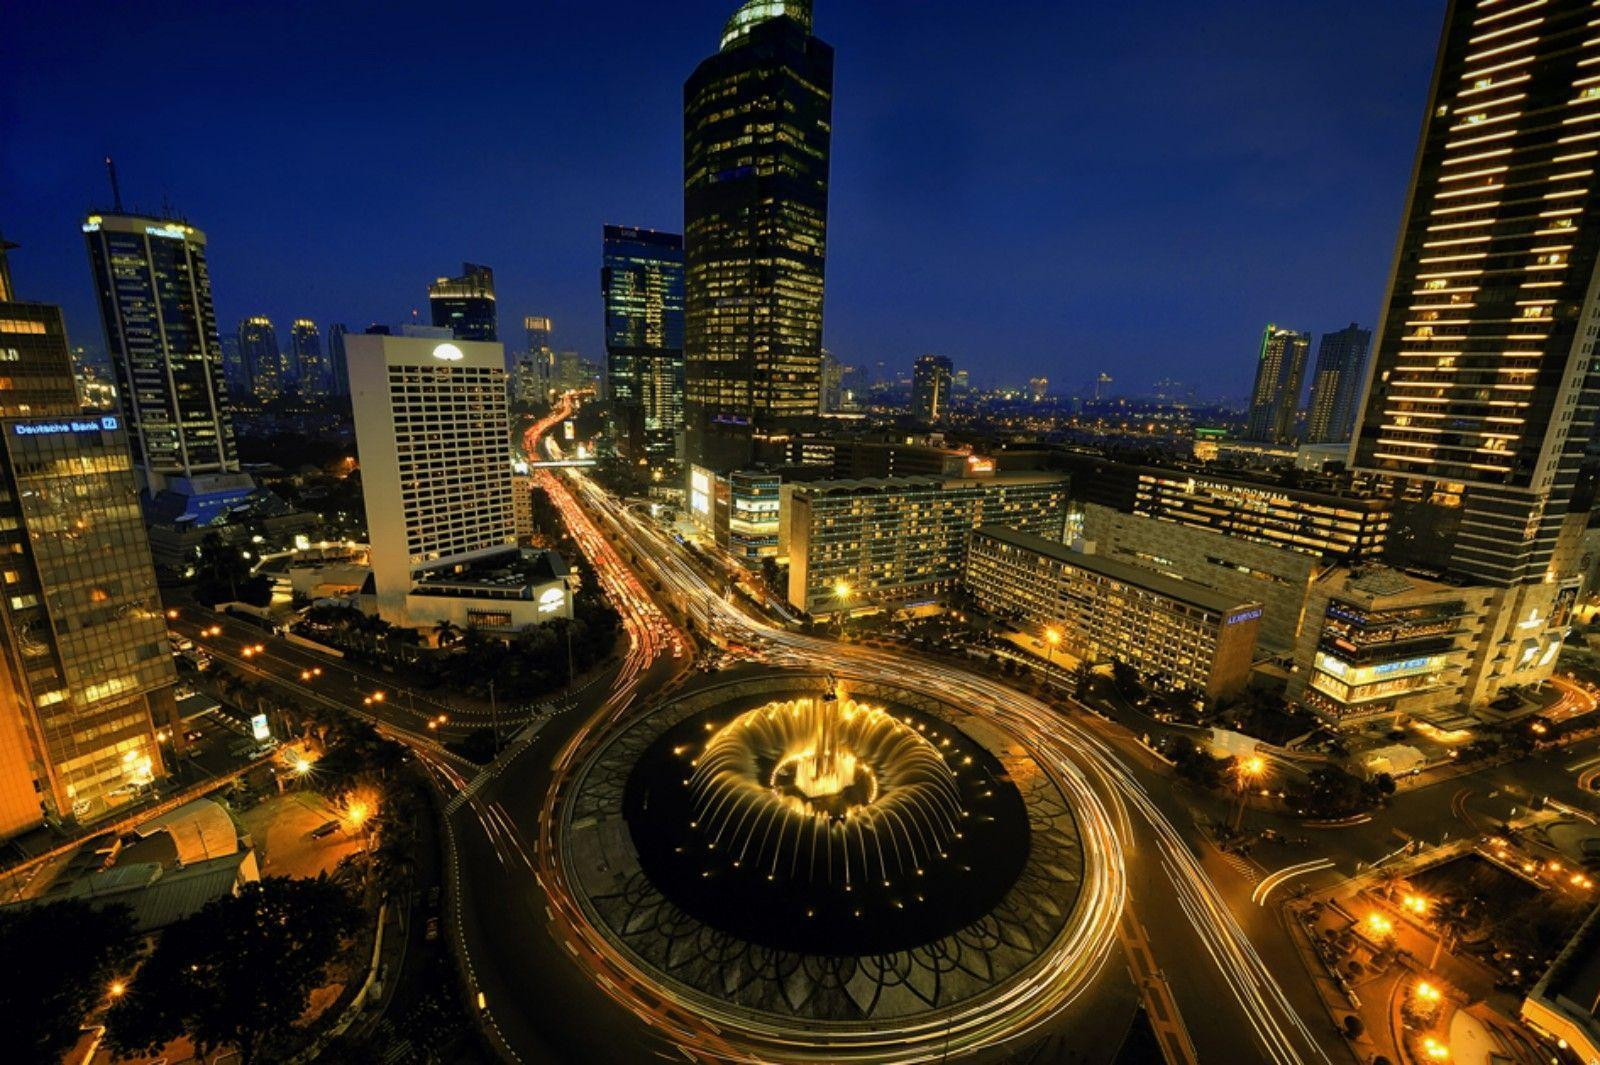 Jakarta, Download Jakarta HD Wallpapers for Free, SHzonGyue Pack